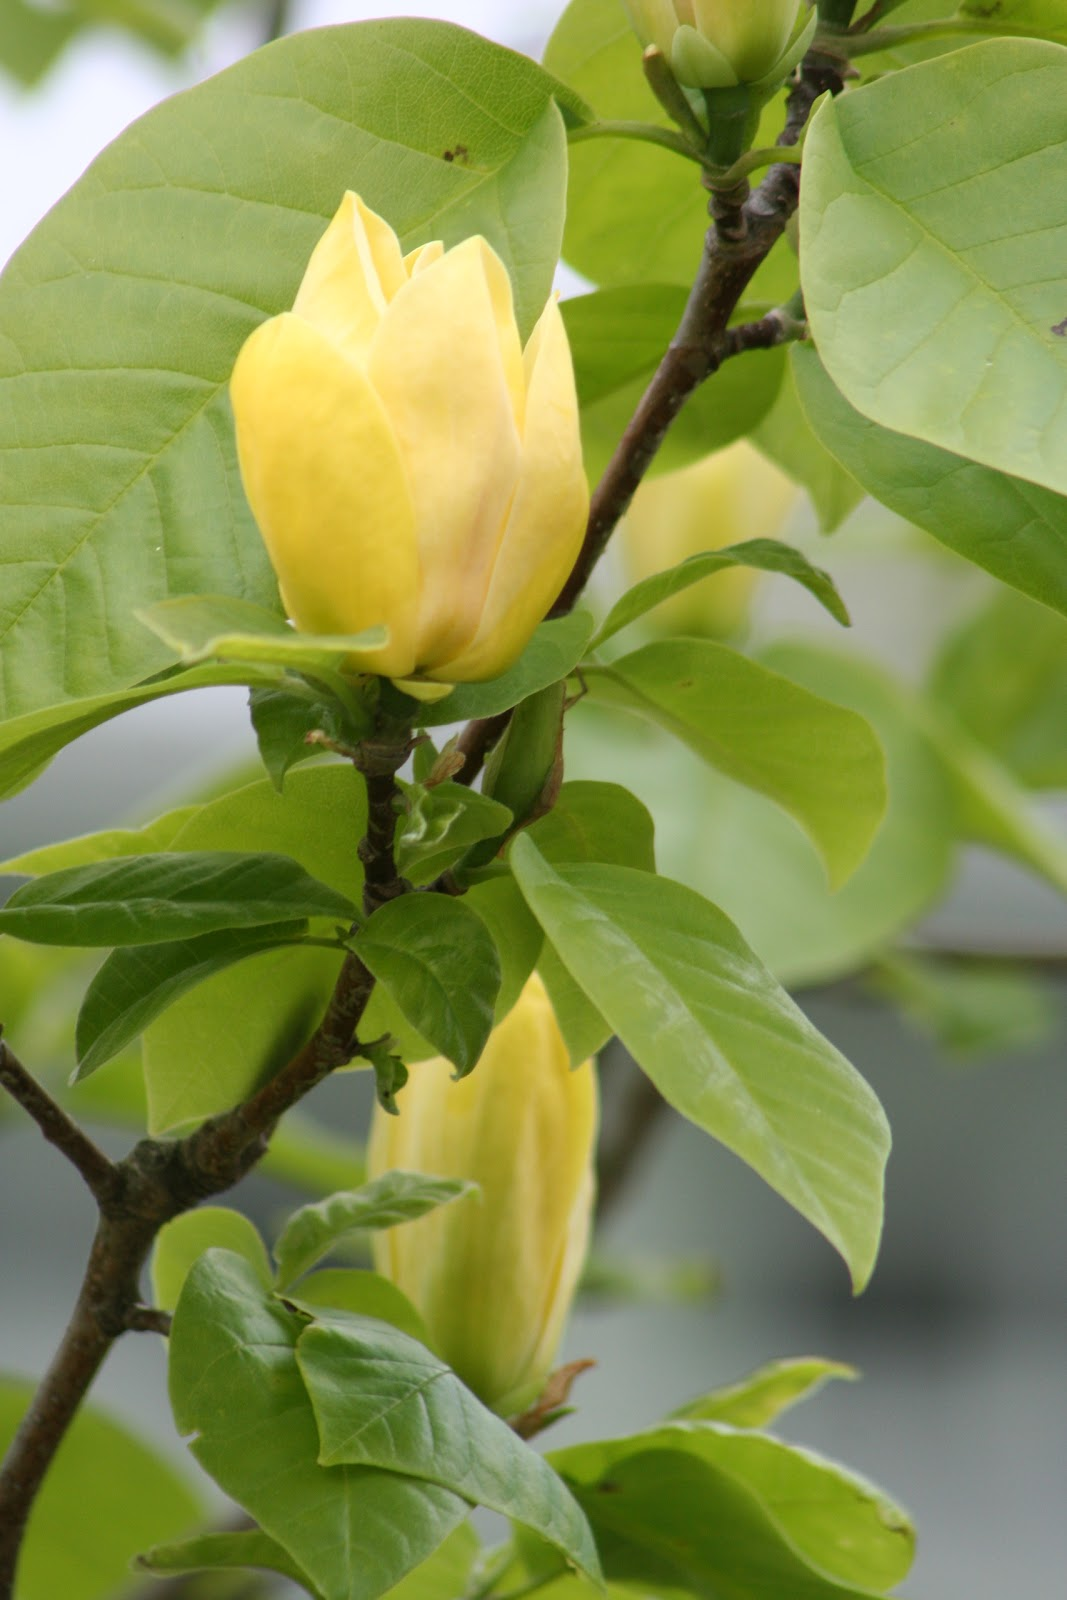 Our garden journal another magnificent magnolia yellow bird our second yellow magnolia yellow bird magnolia acuminata has been in bloom this week blooming nearly three weeks after our other yellow magnolia mightylinksfo